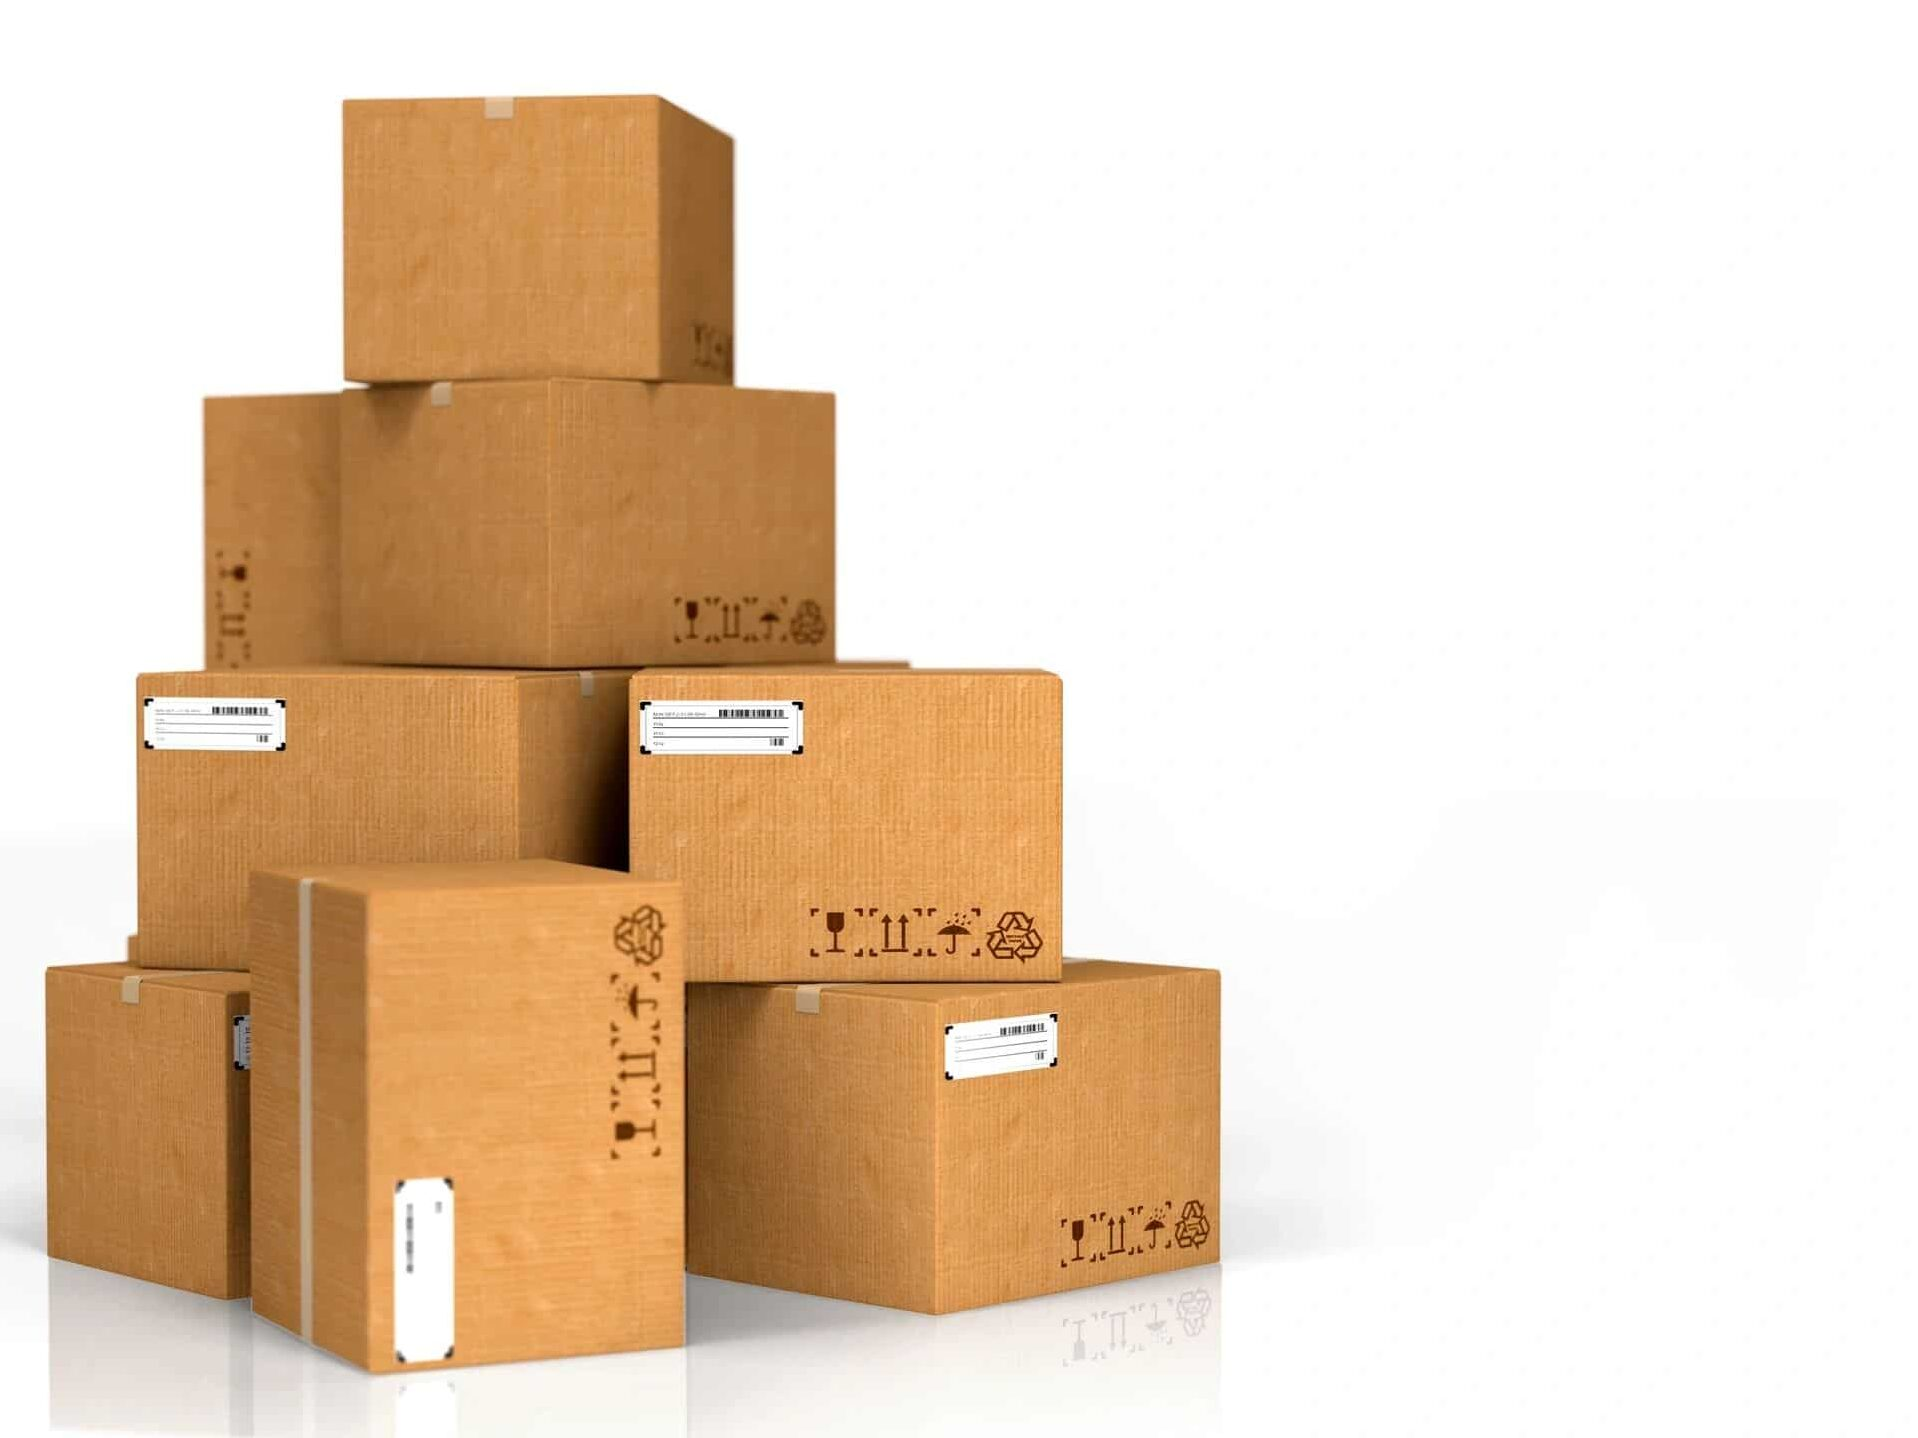 image of boxes from Amazon Vine.